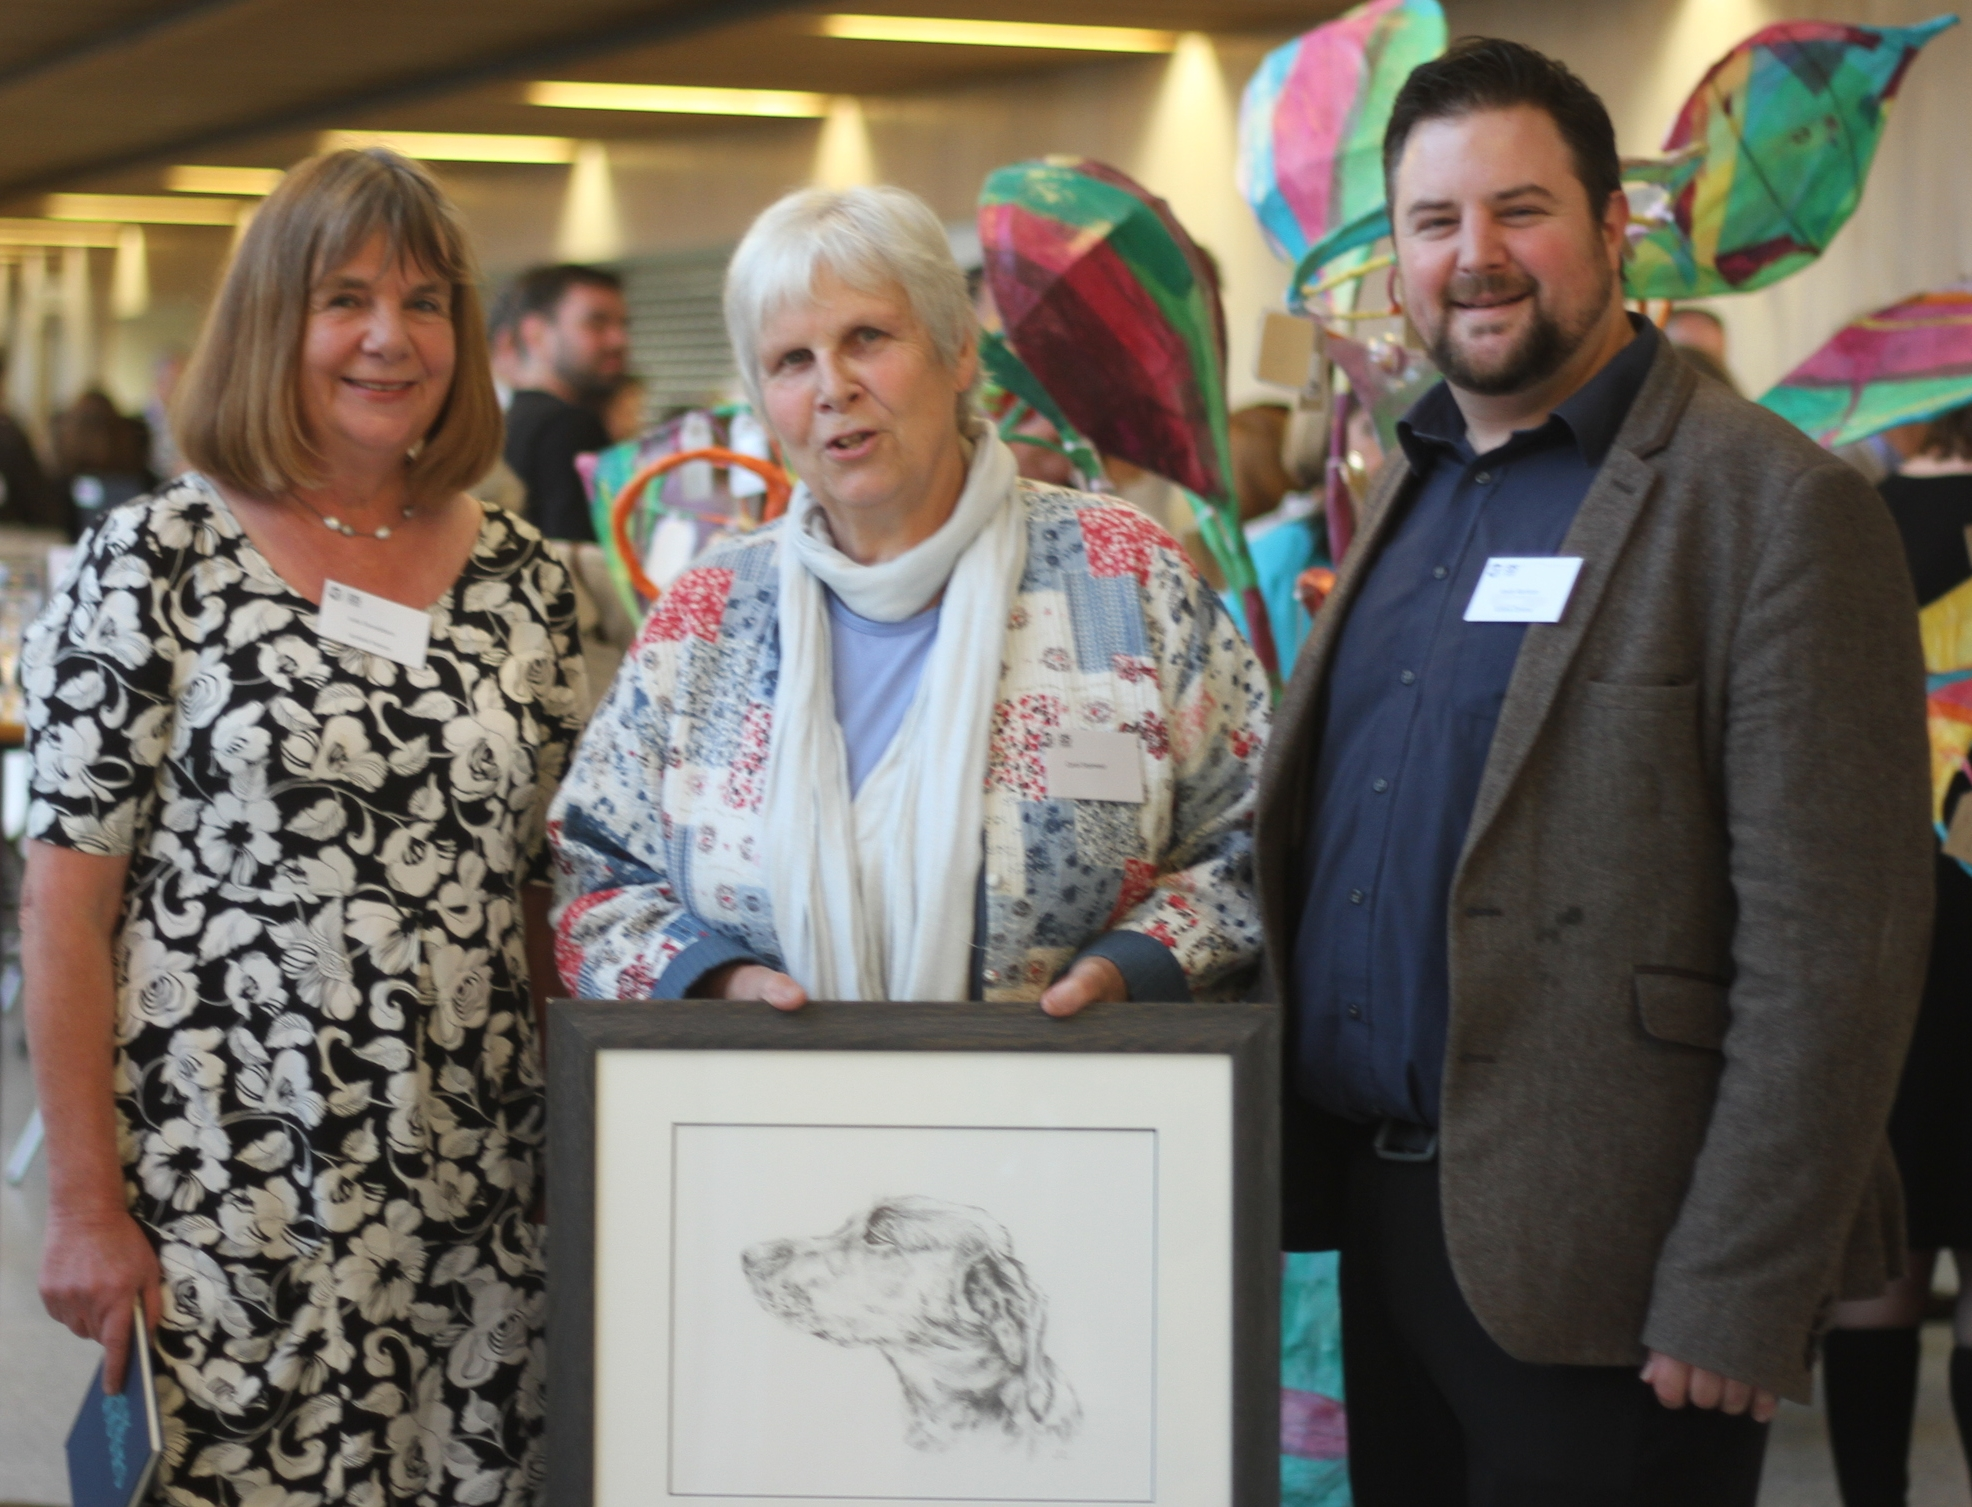 Julia Donaldson, Patron of Artlink Central, with Carol Seymour, 'Queen of the Volunteers' and Director Kevin Harrison at the 25th Anniversary of Artlink Central.